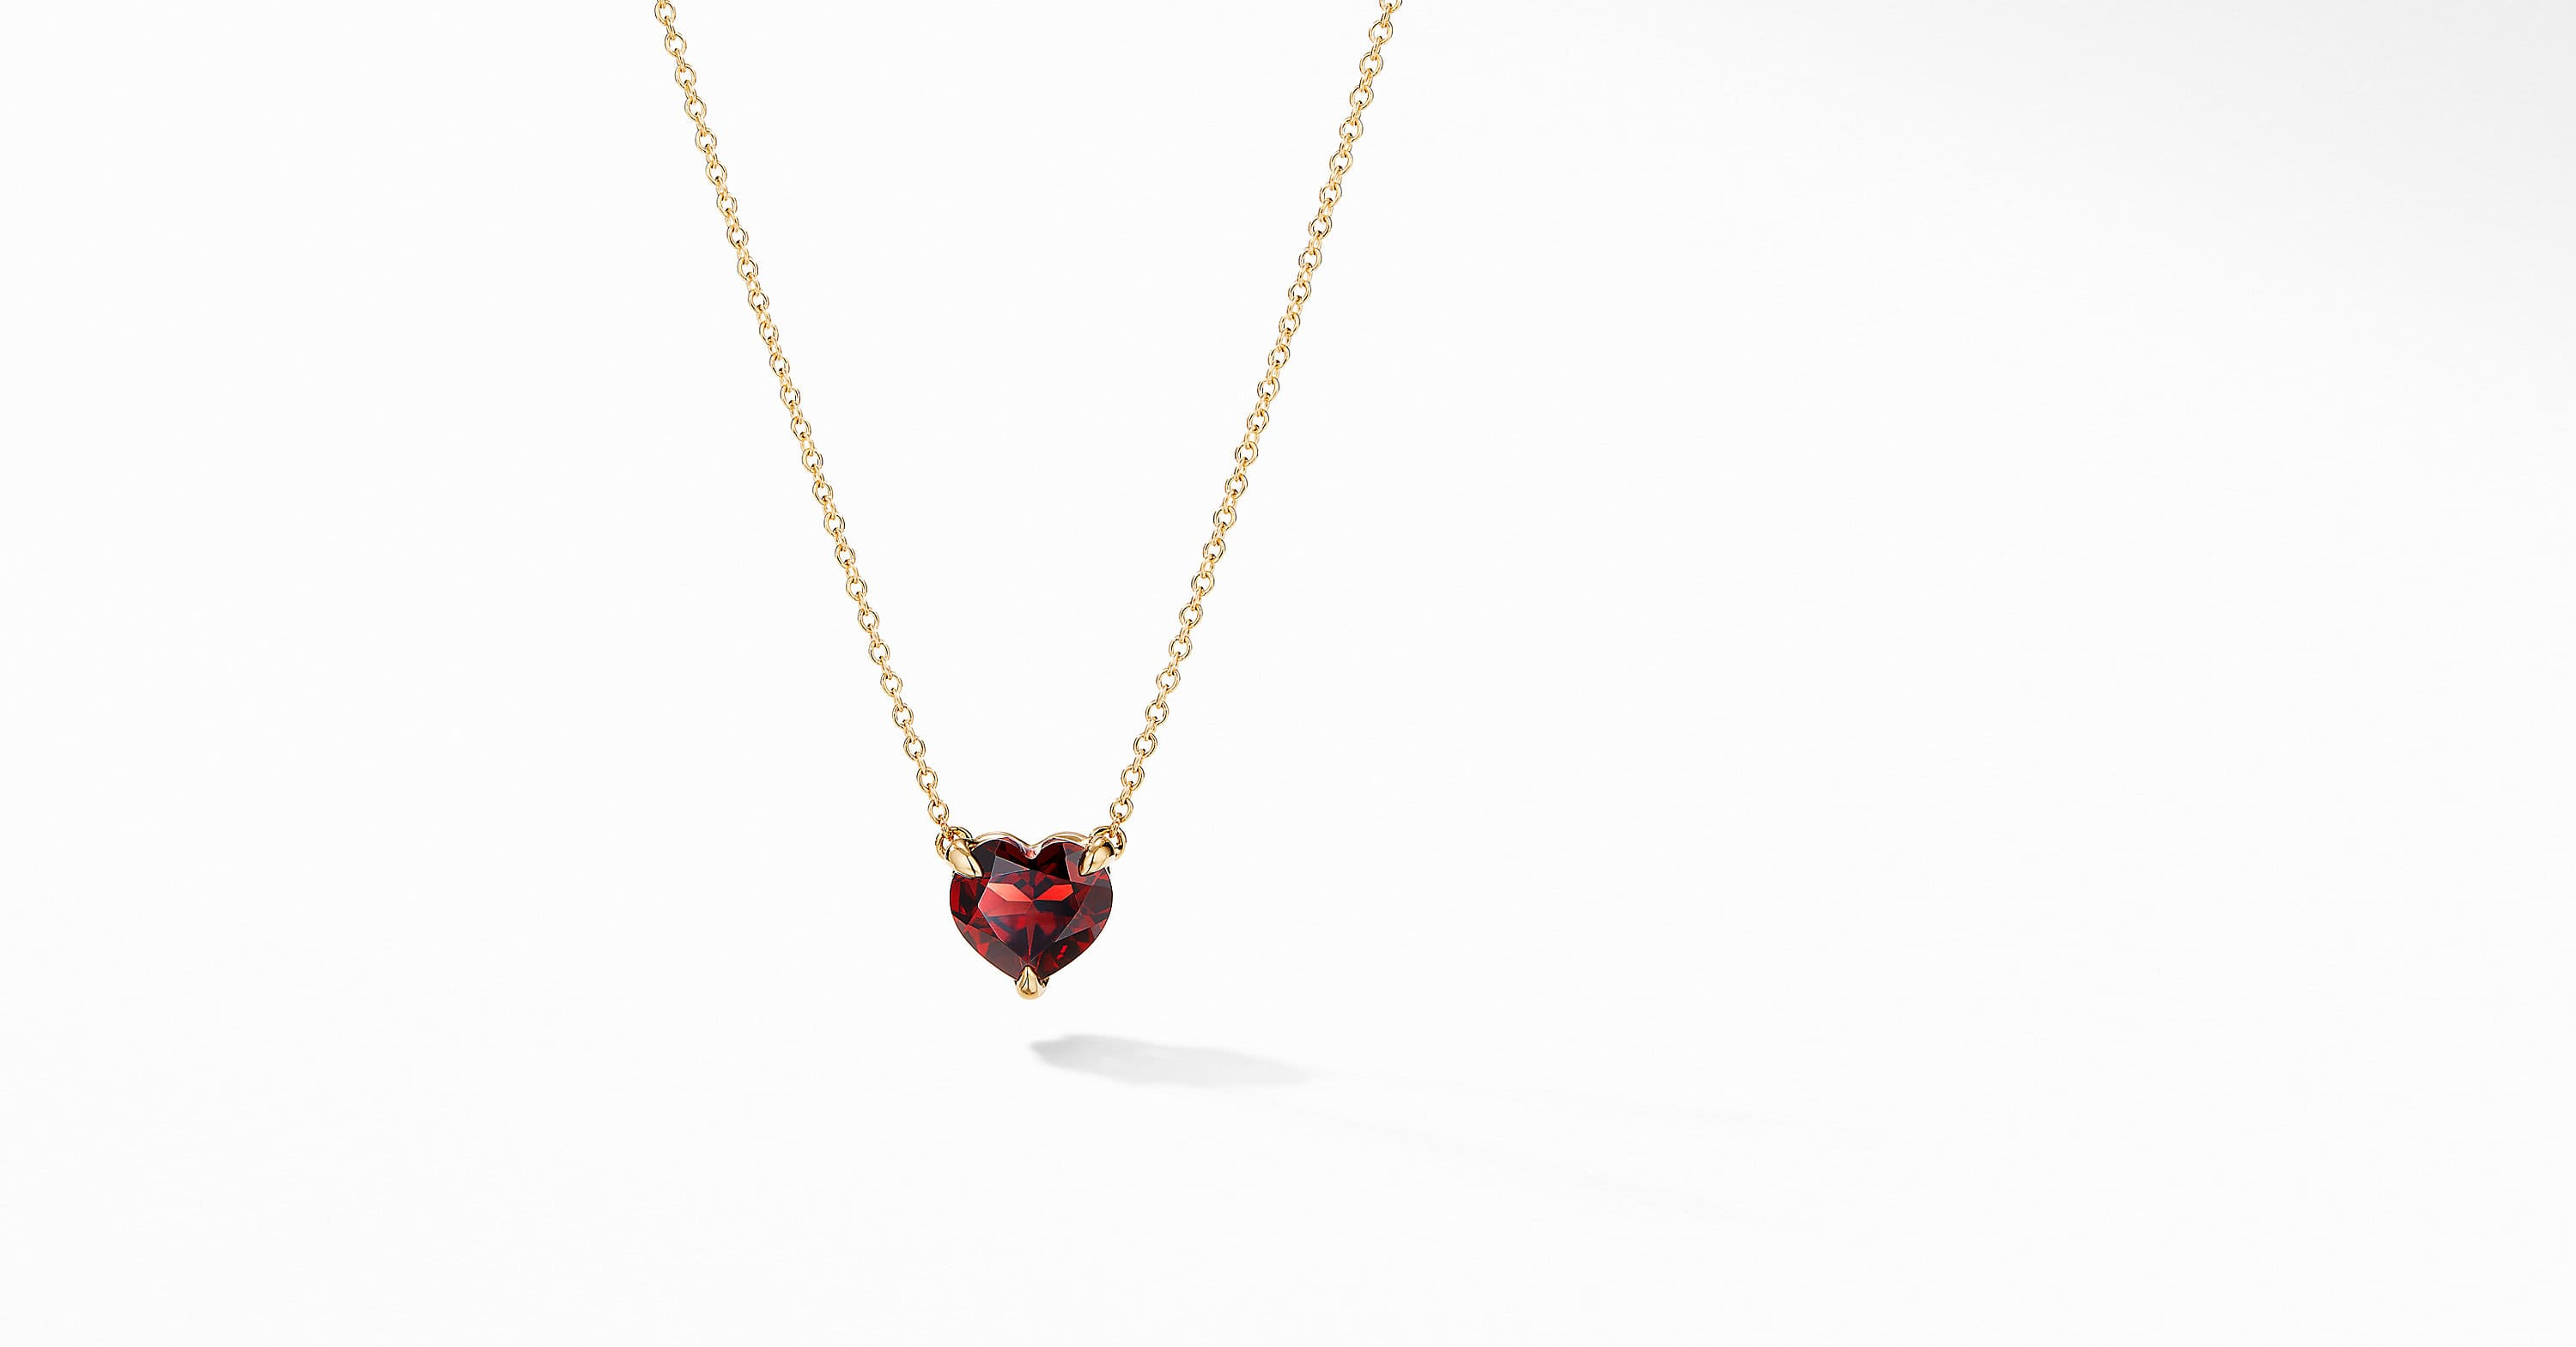 Heart Pendant Necklace in 18K Yellow Gold